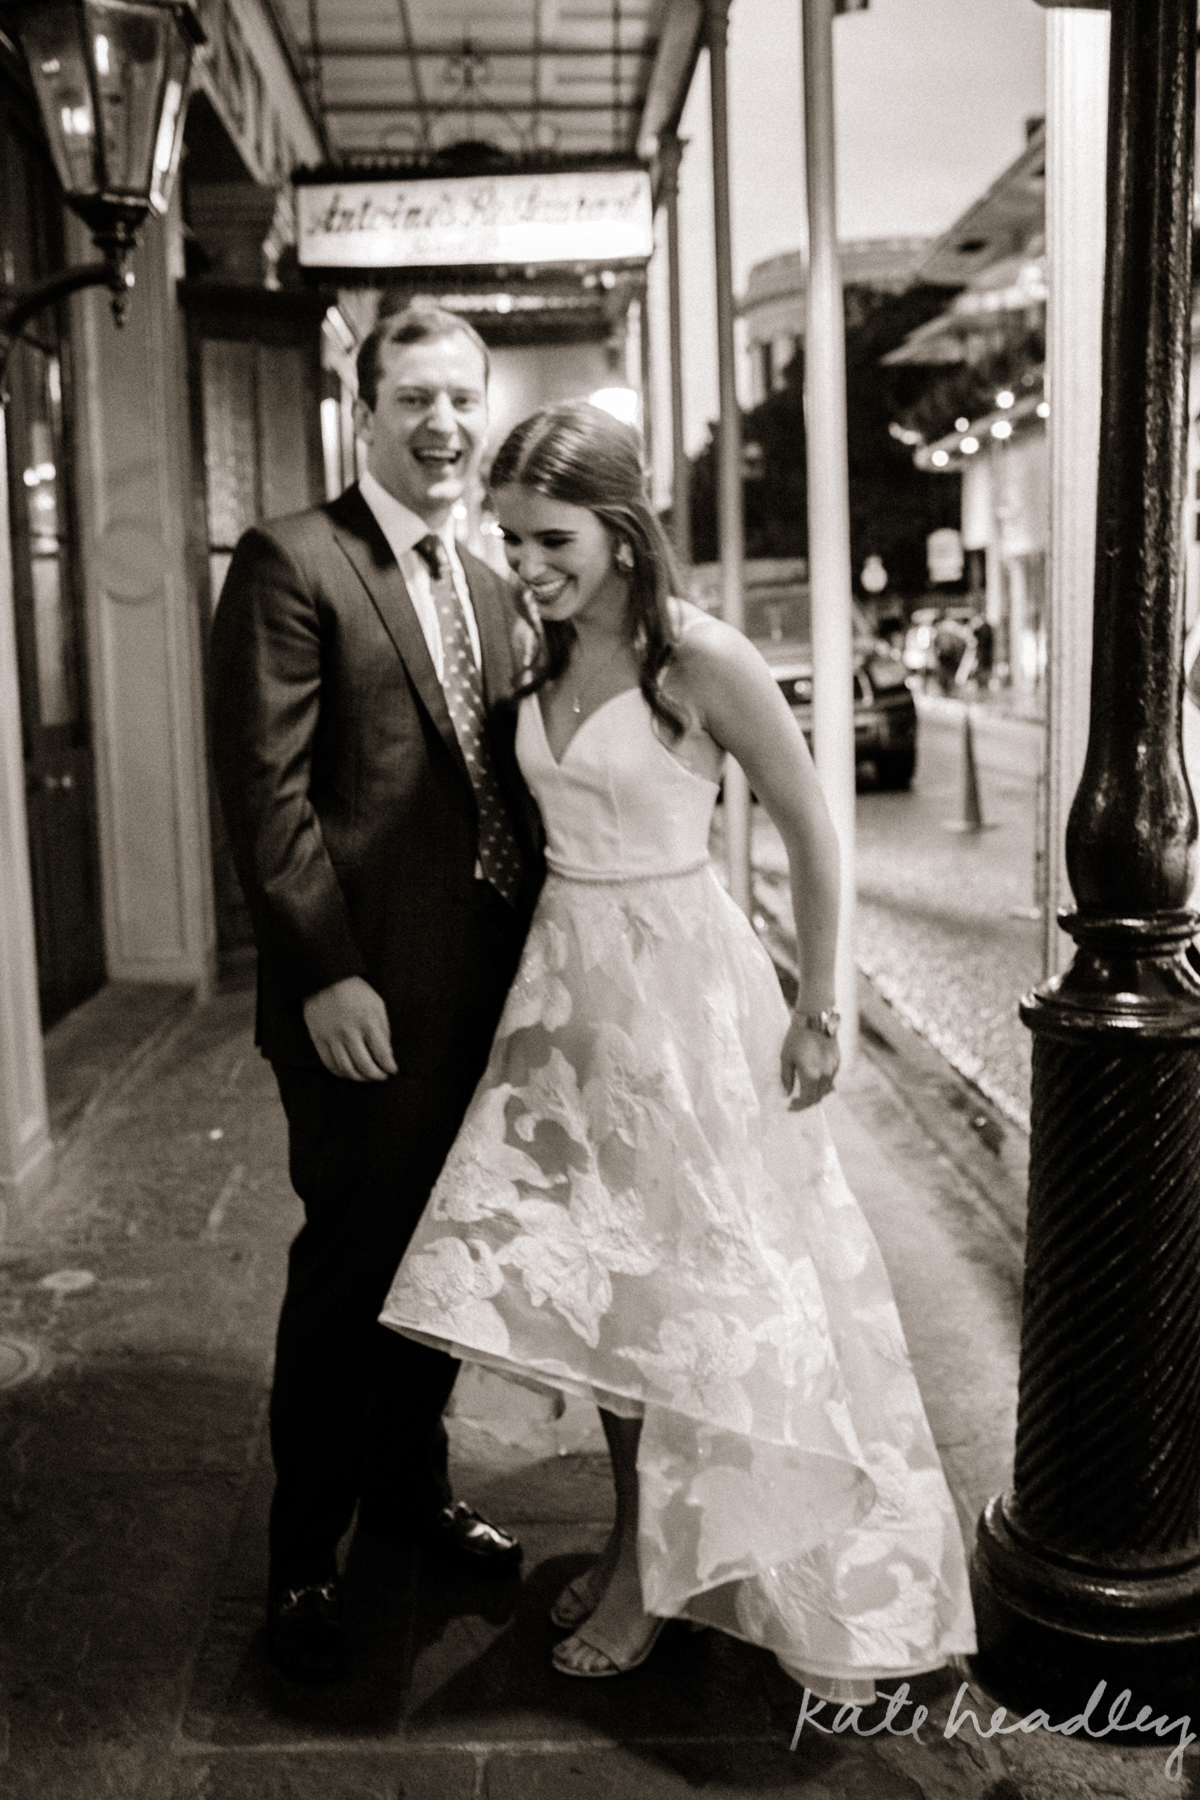 452_KATEHEADLEY_NEW_ORLEANS_WEDDING.jpg